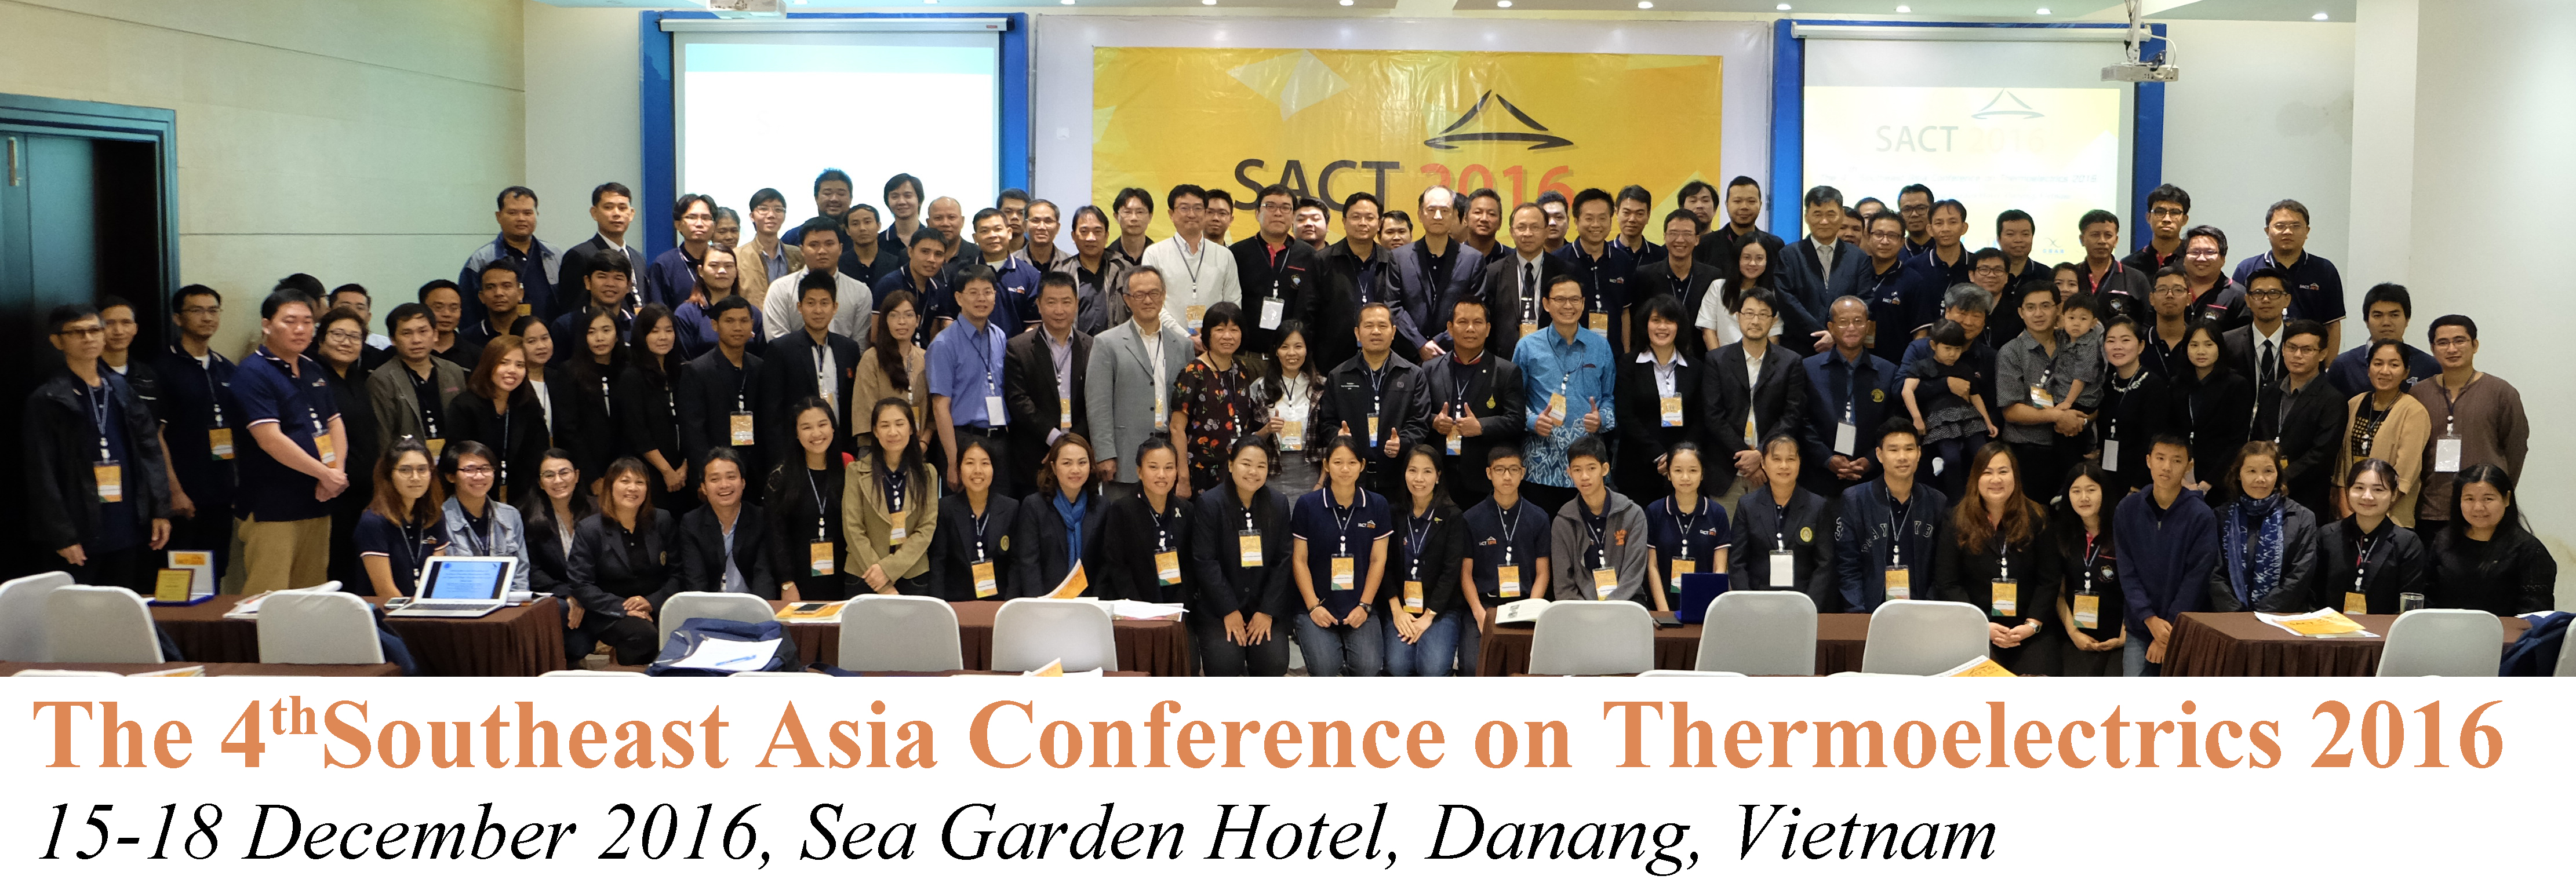 The 4th Southeast Asia Conference on Thermoelectrics 2016